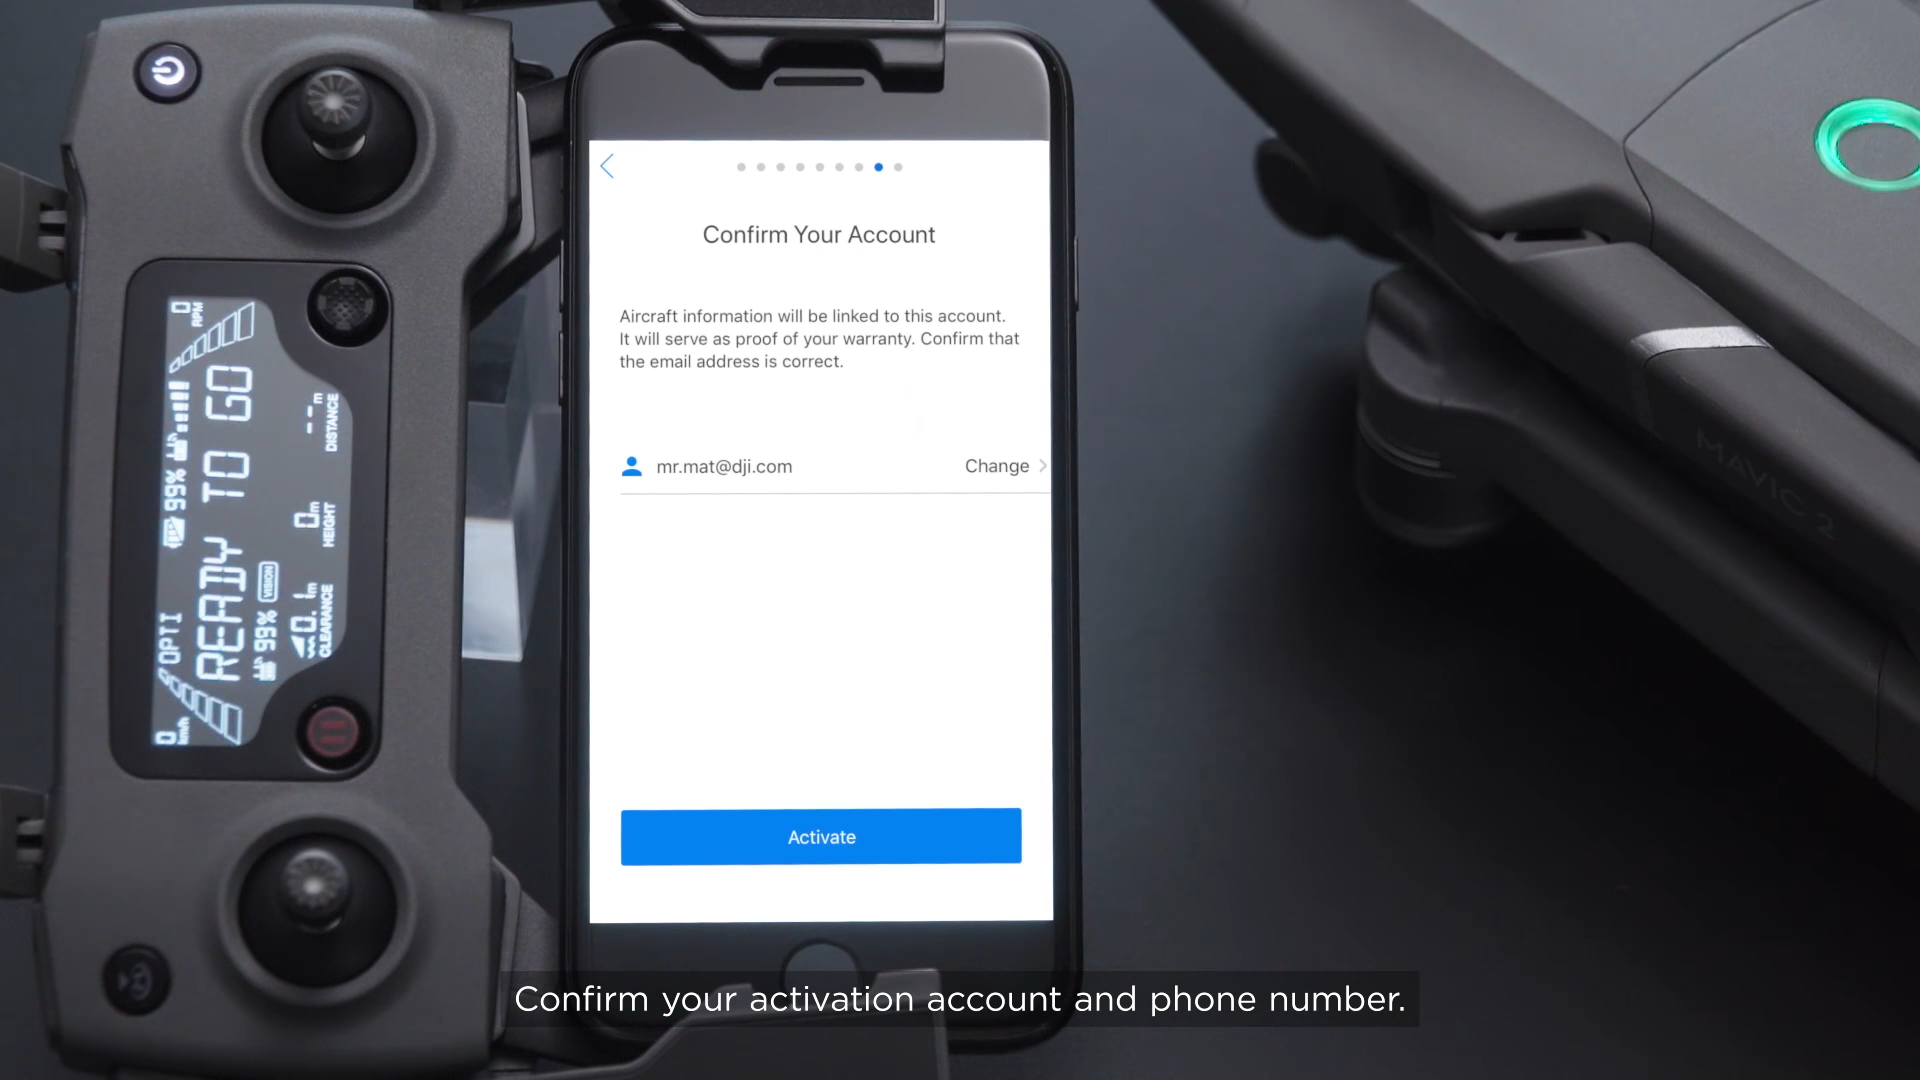 Create a DJI account to finish activating